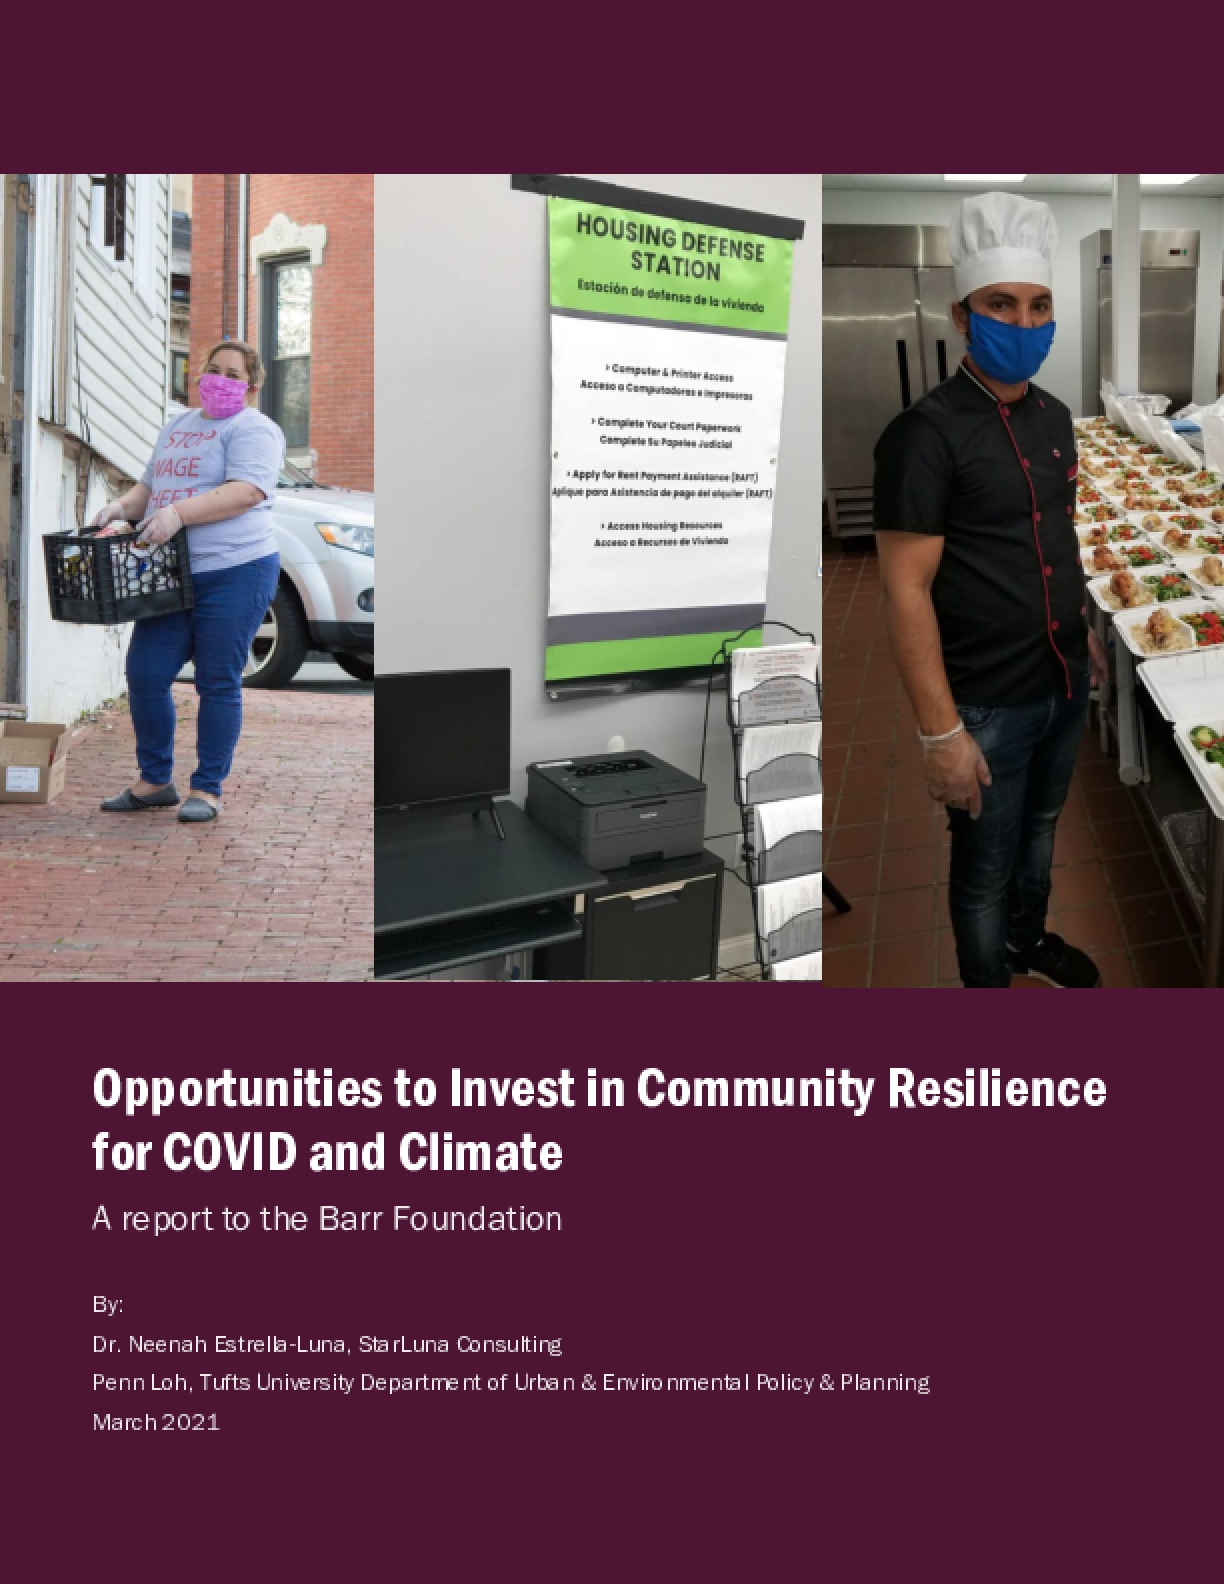 Opportunities to Invest in Community Resilience for COVID and Climate